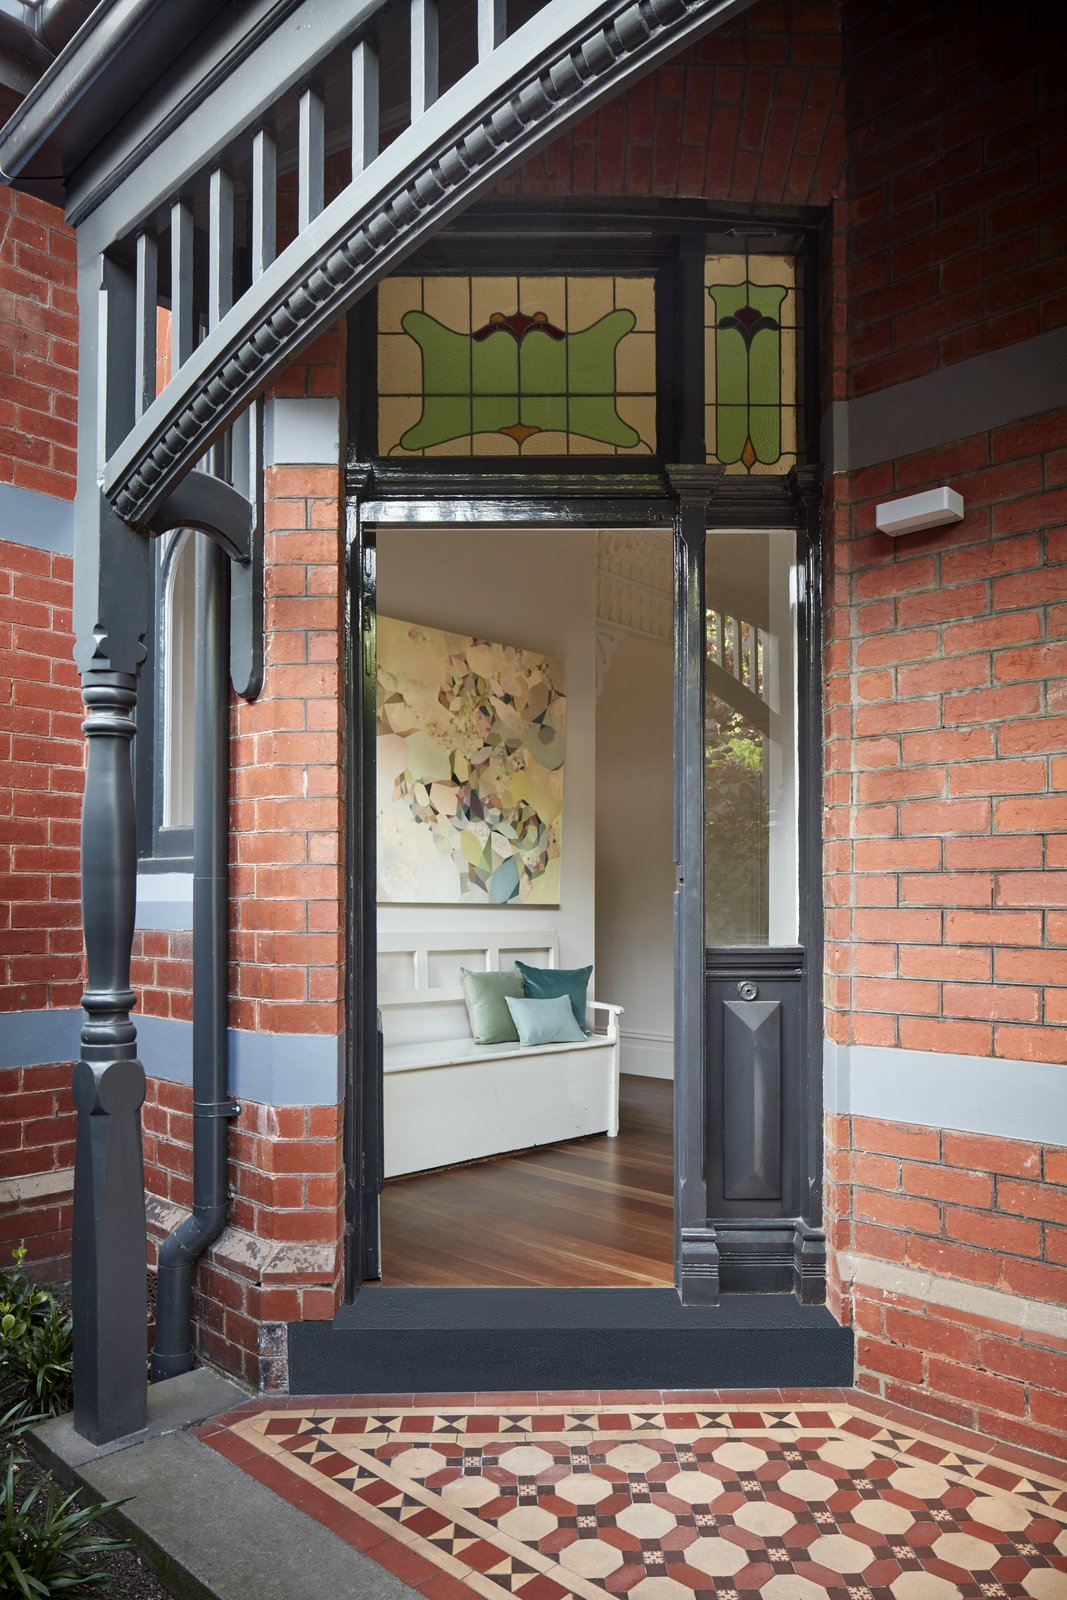 Exterior, Brick Siding Material, and House Building Type Throughout the revamp, charming historical details were kept intact.    Photo 2 of 11 in Courtyards Maximize Sunlight in This Renovated Australian Abode